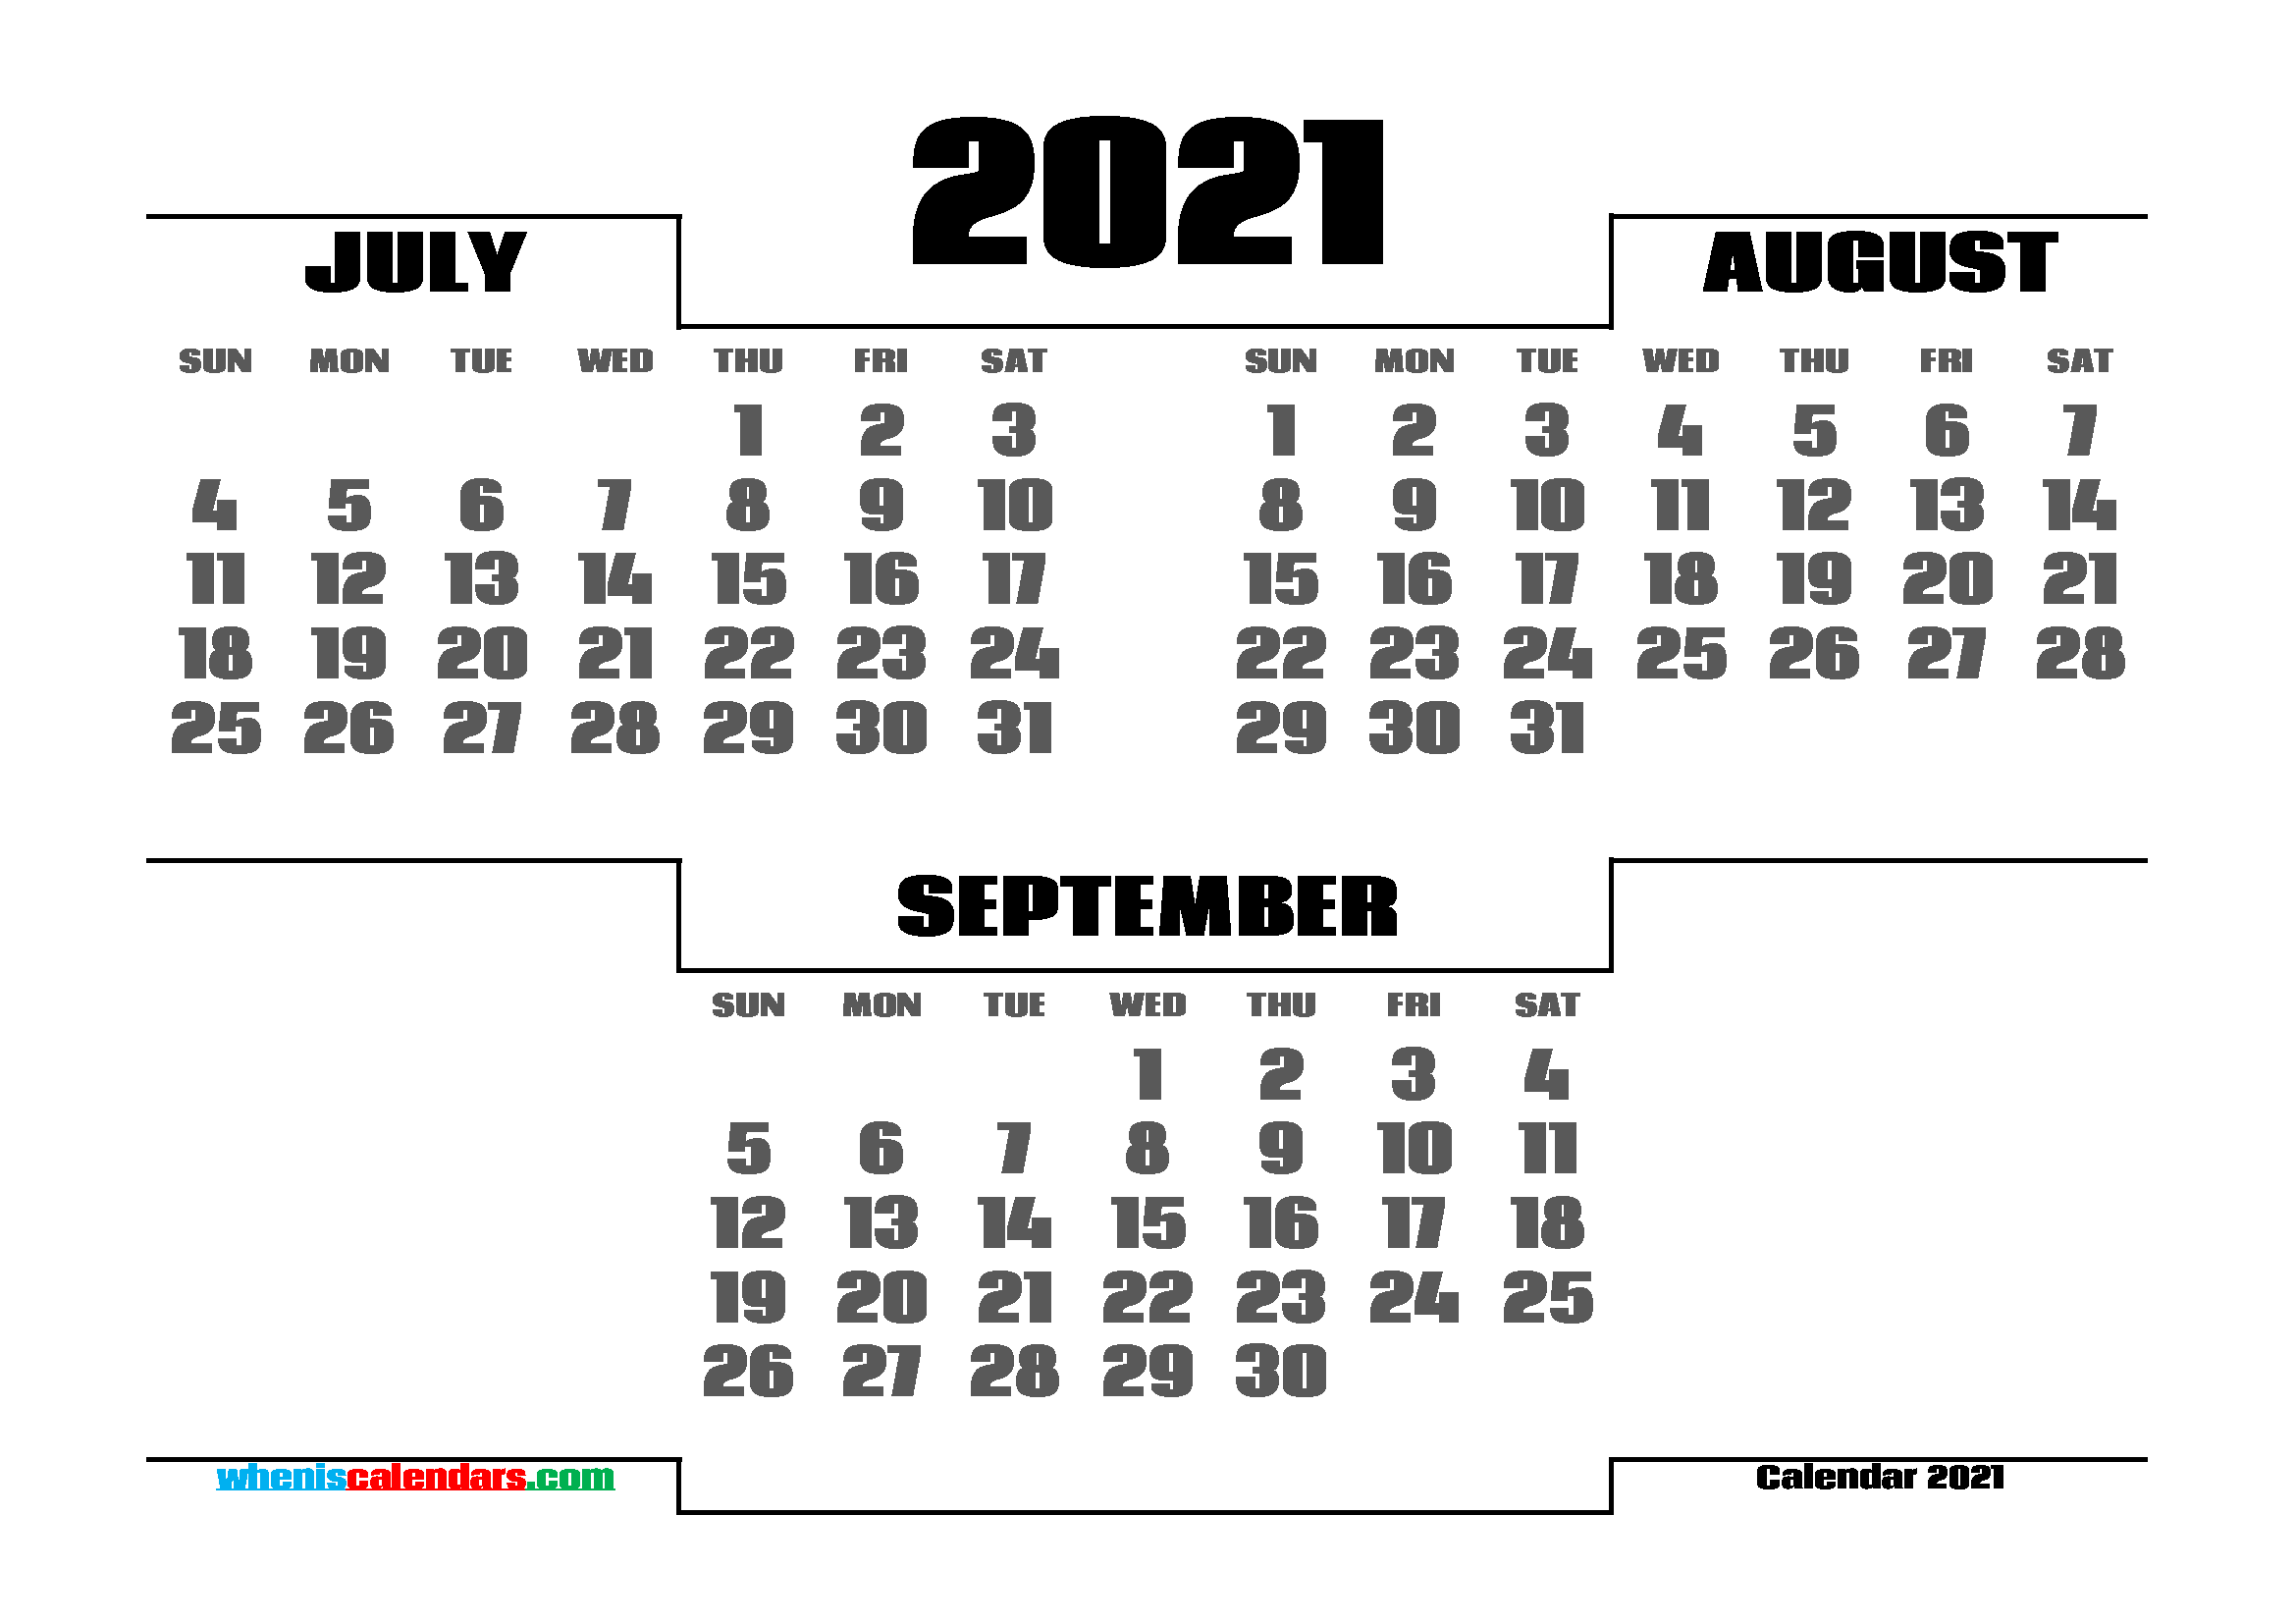 July August September 2021 Calendar printable 3 month calendar on one page